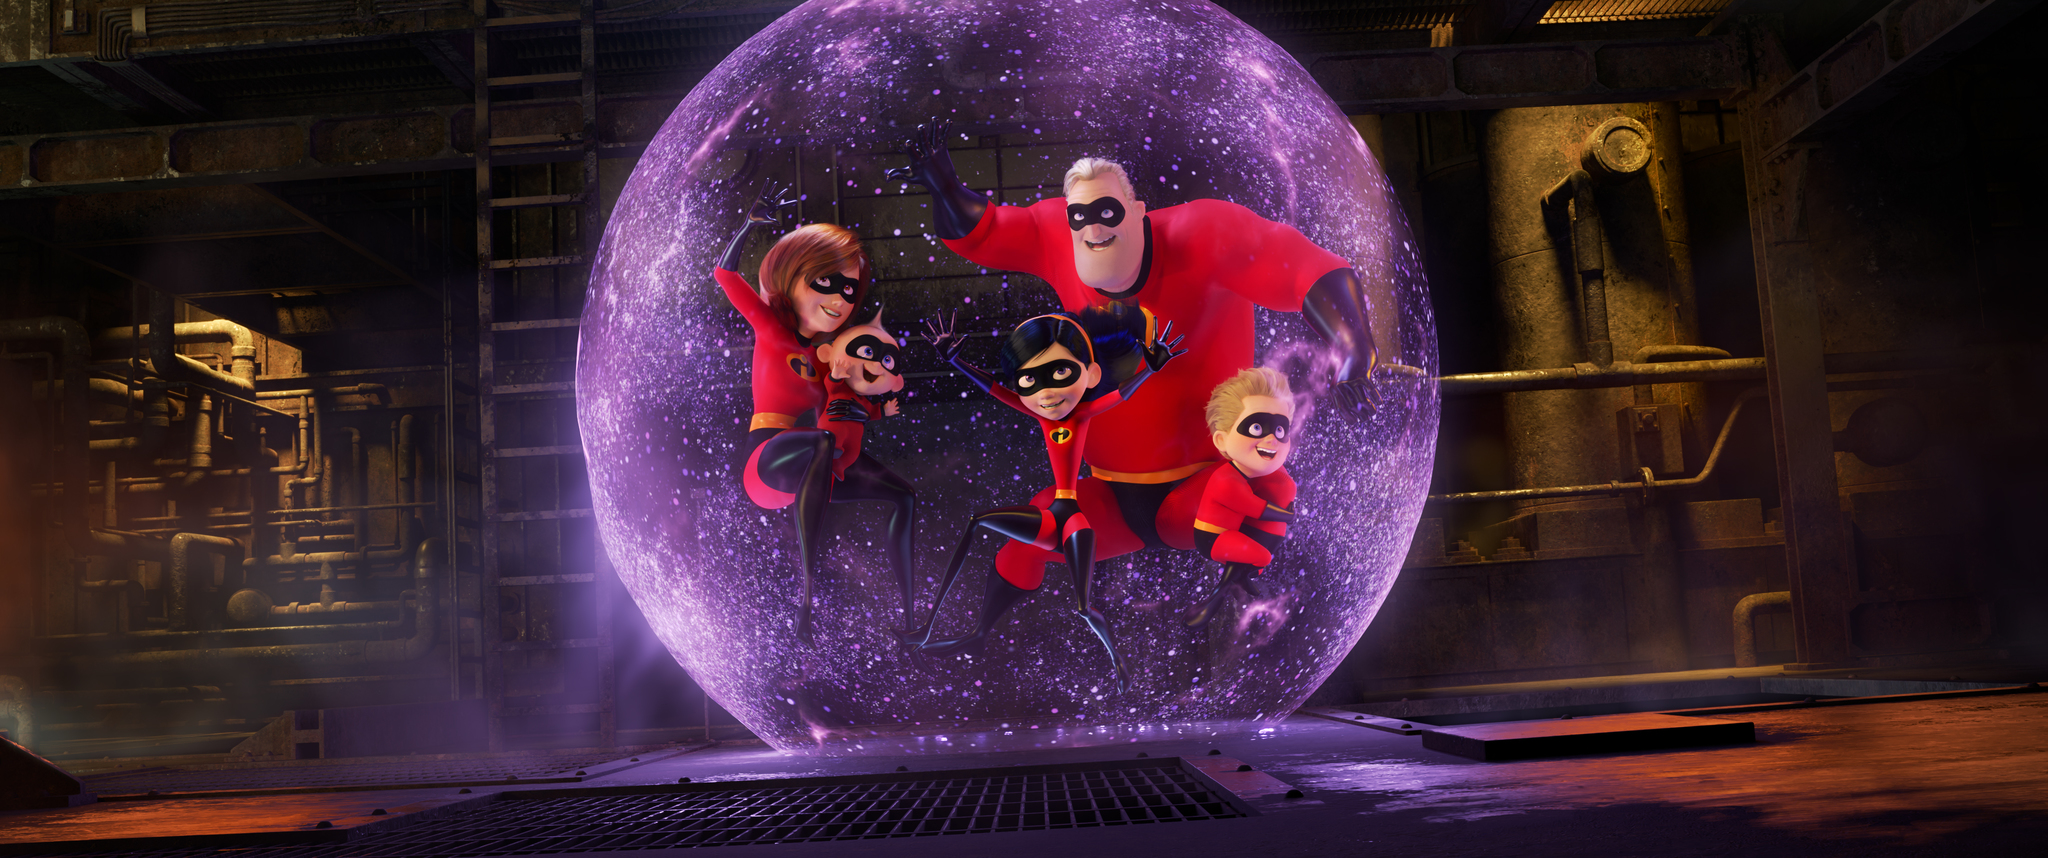 Holly Hunter, Craig T. Nelson, Sarah Vowell, Eli Fucile, and Huck Milner in Incredibles 2 (2018)